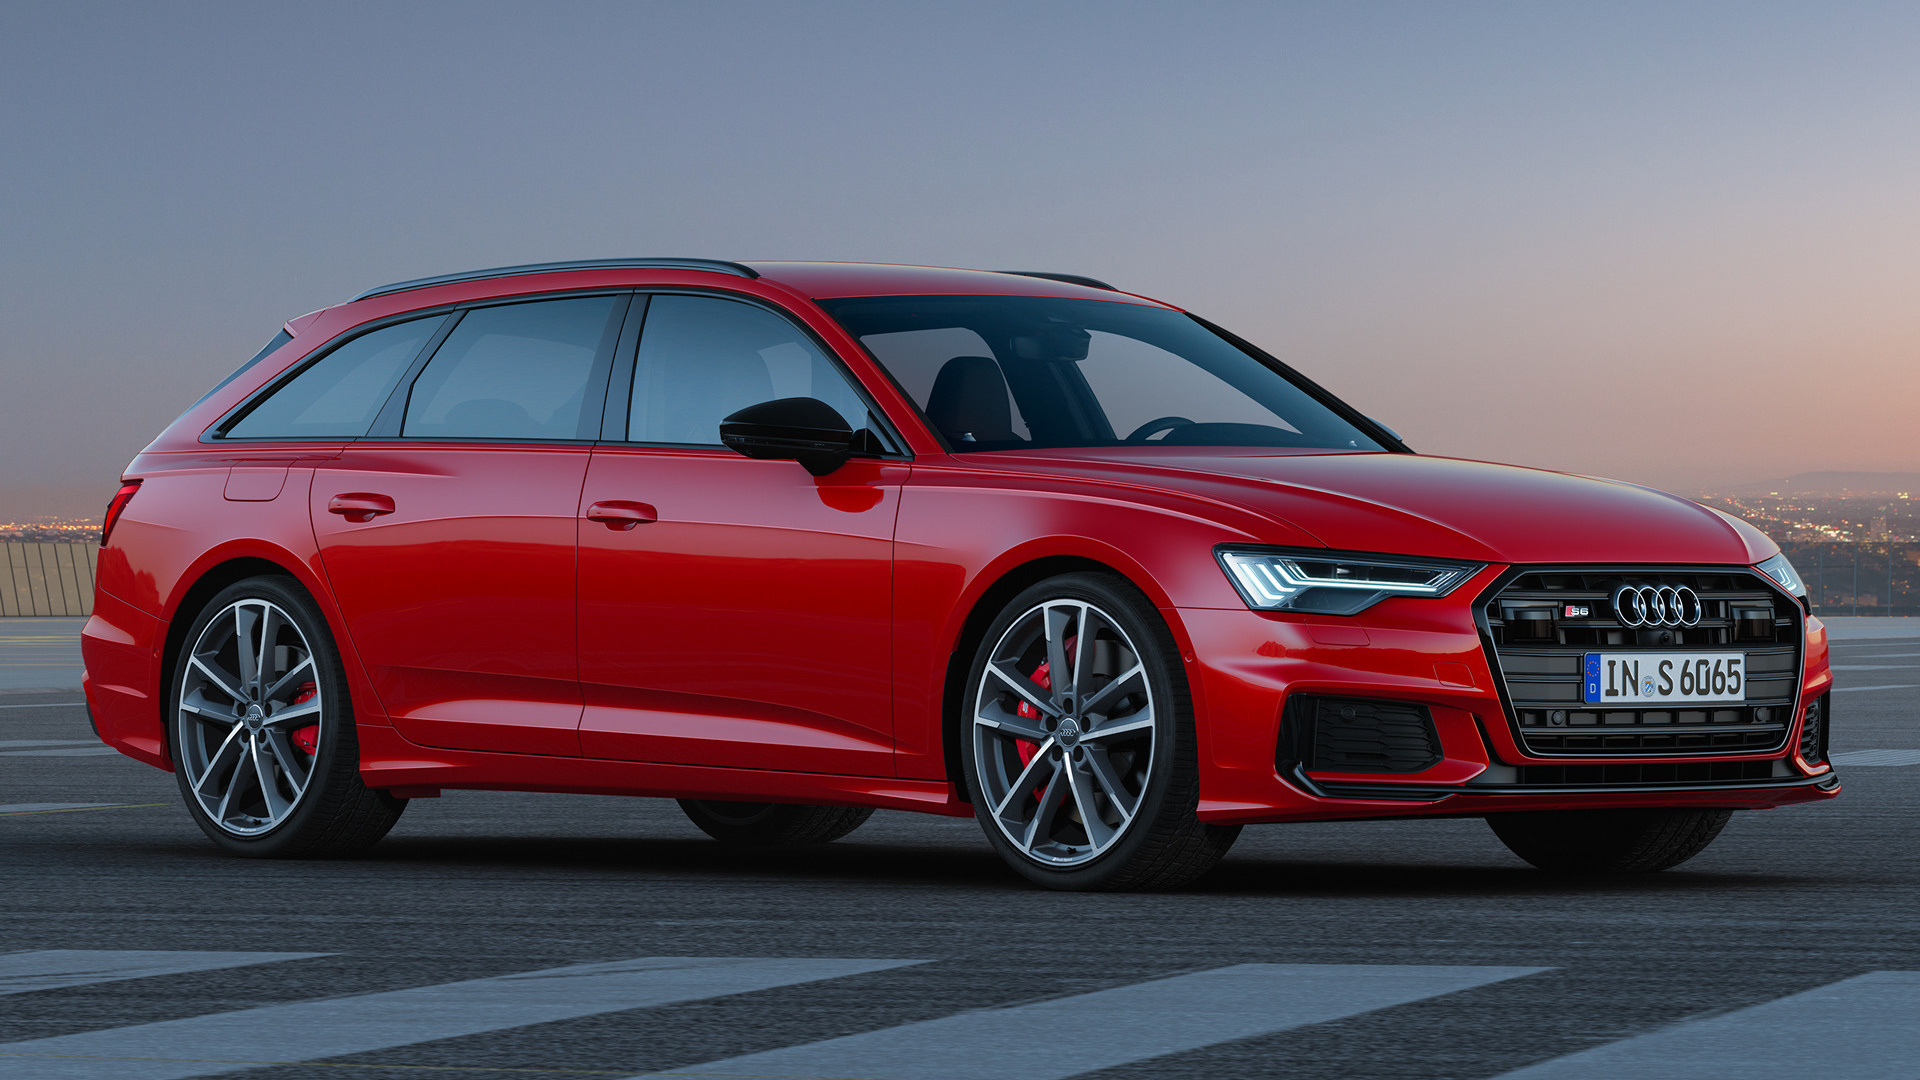 2019 Audi S6 Avant Black Optic Package - Wallpapers and HD ...